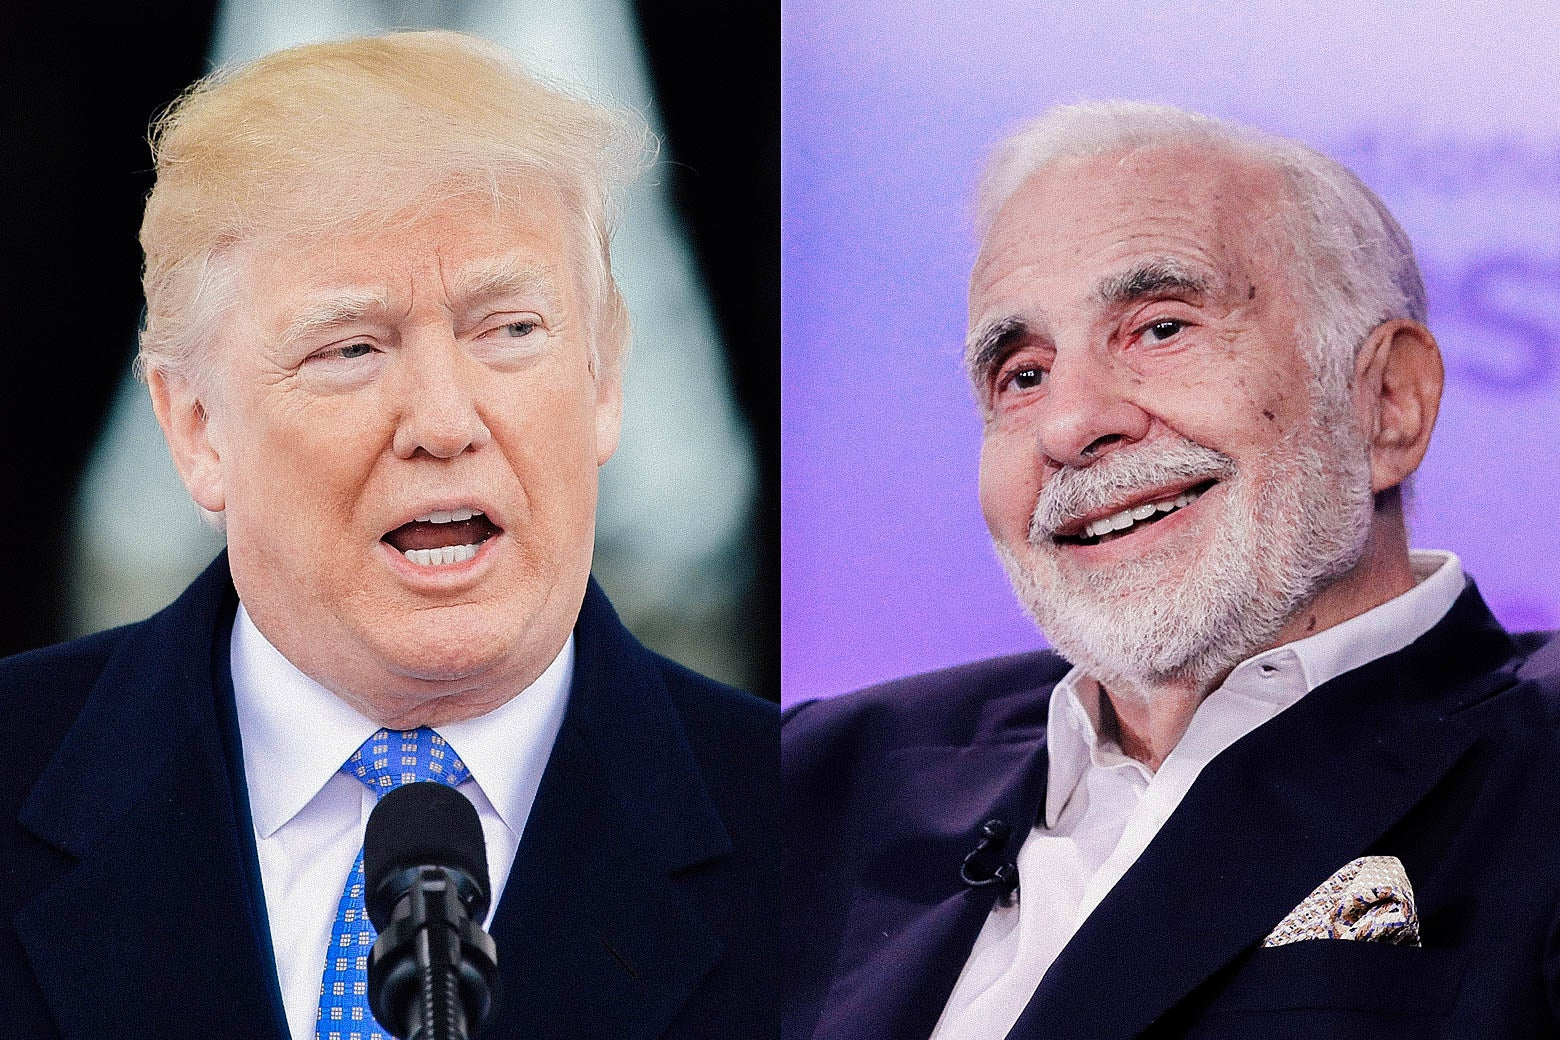 Side-by-side photos of Donald Trump and Carl Icahn.